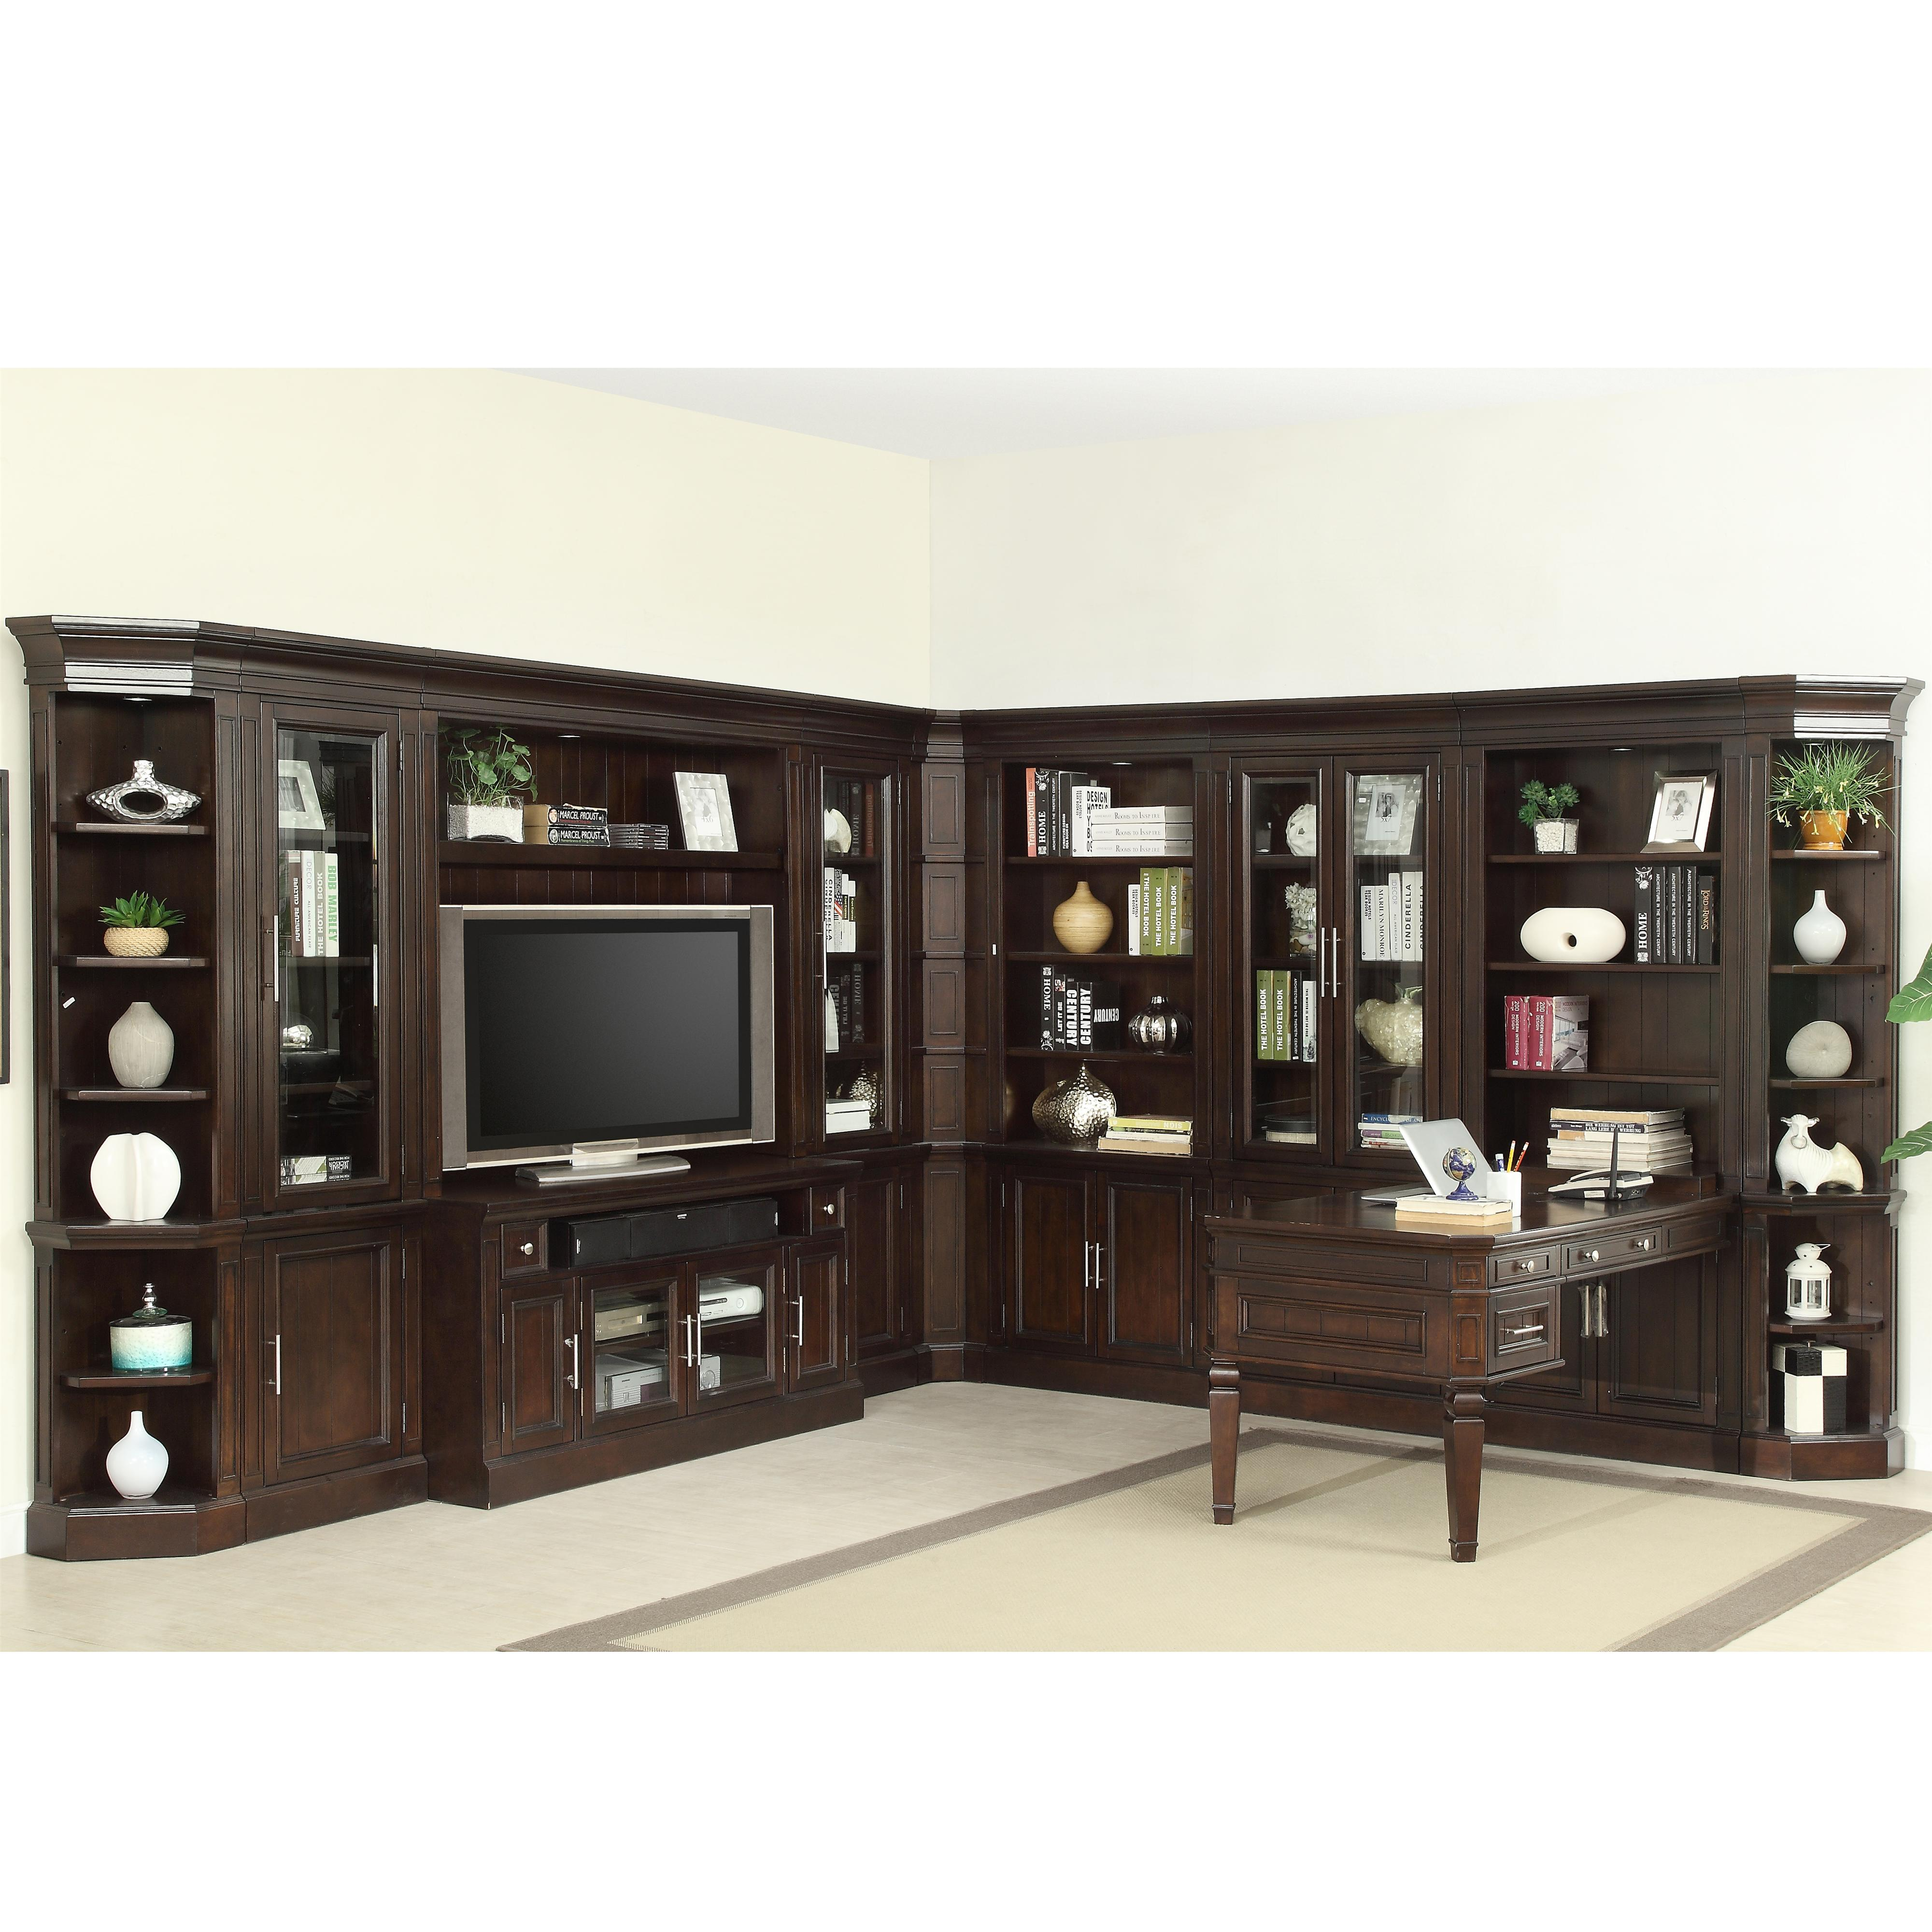 Parker House Stanford Complete Wall Unit With Peninsula Desk And Tv Console